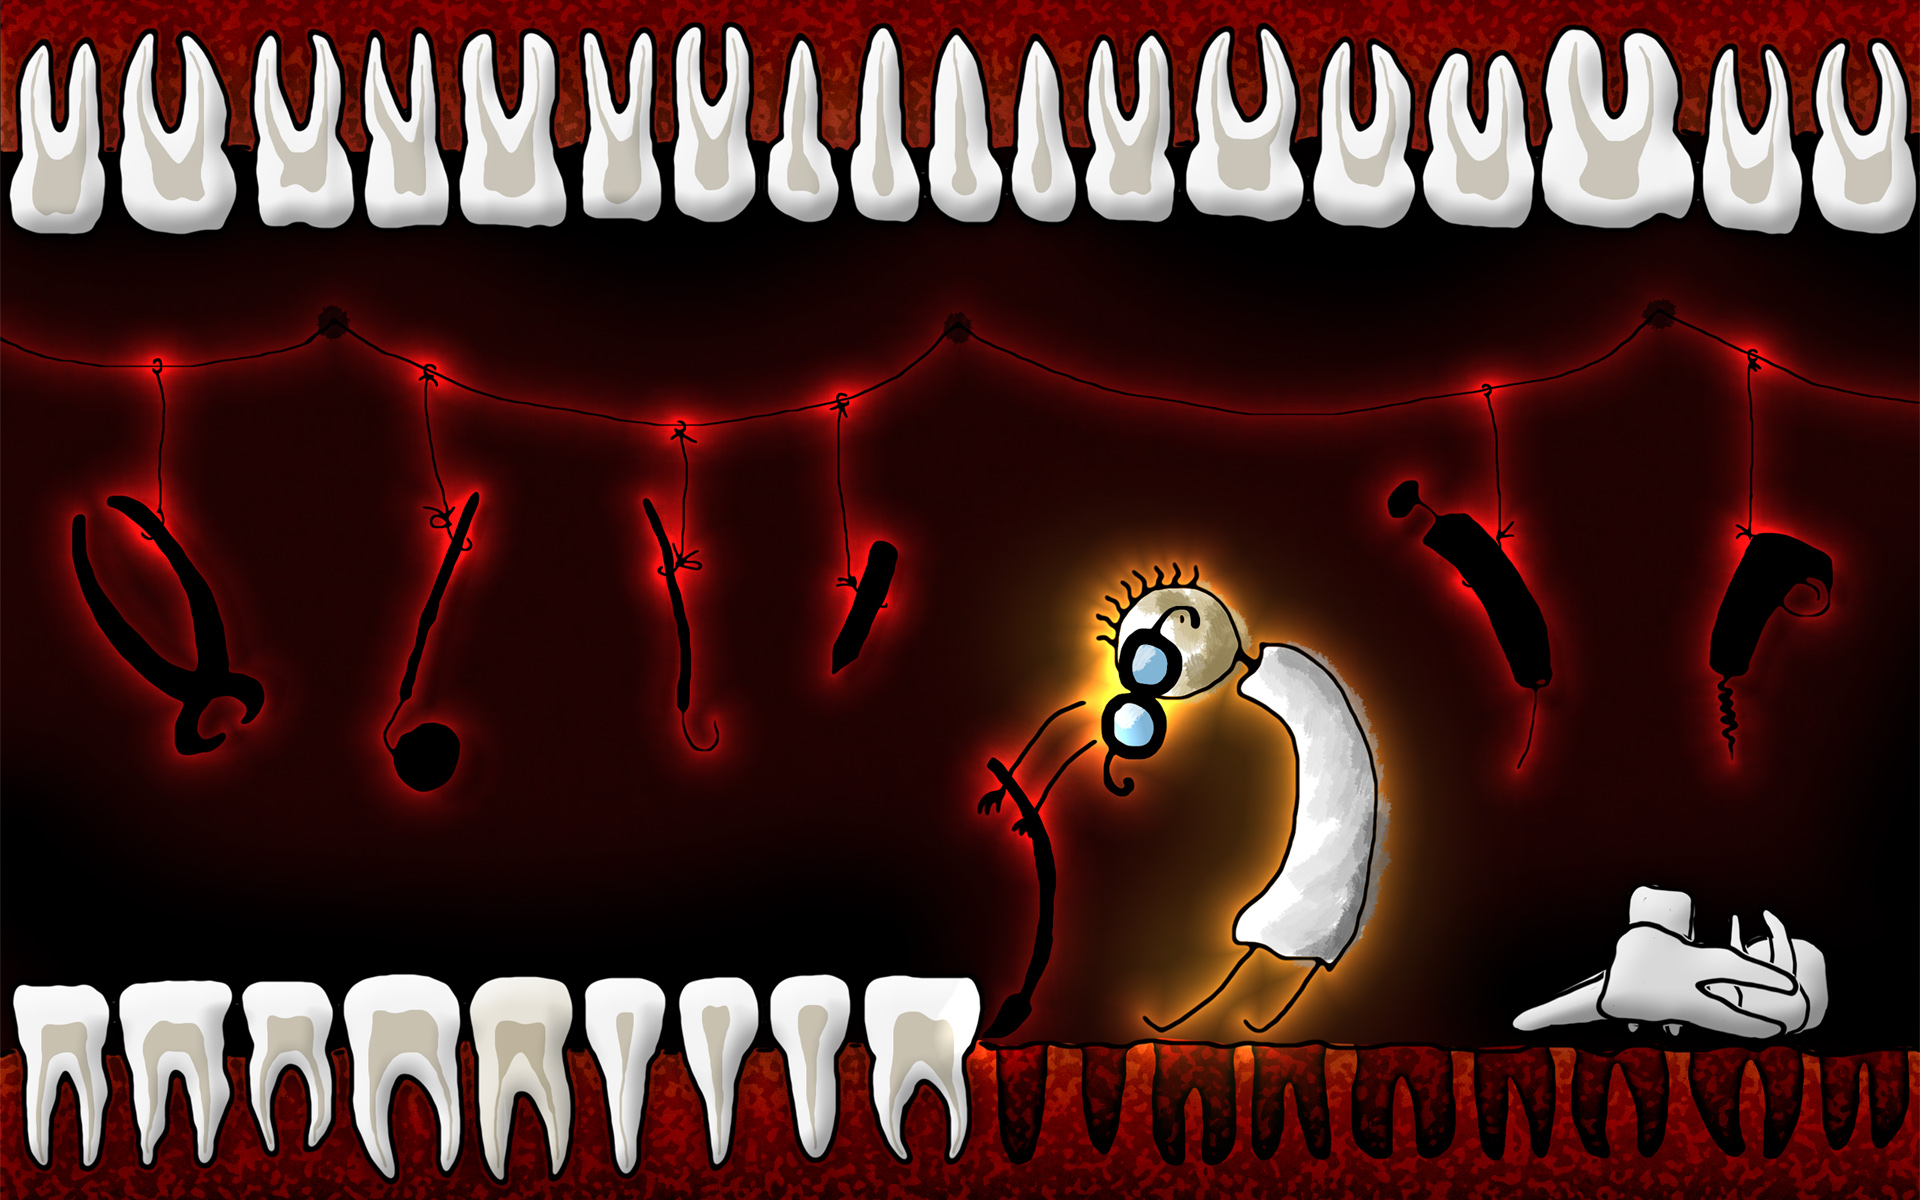 cool backgrounds wallpapers vladstudio teeth 1920x1200 1920x1200